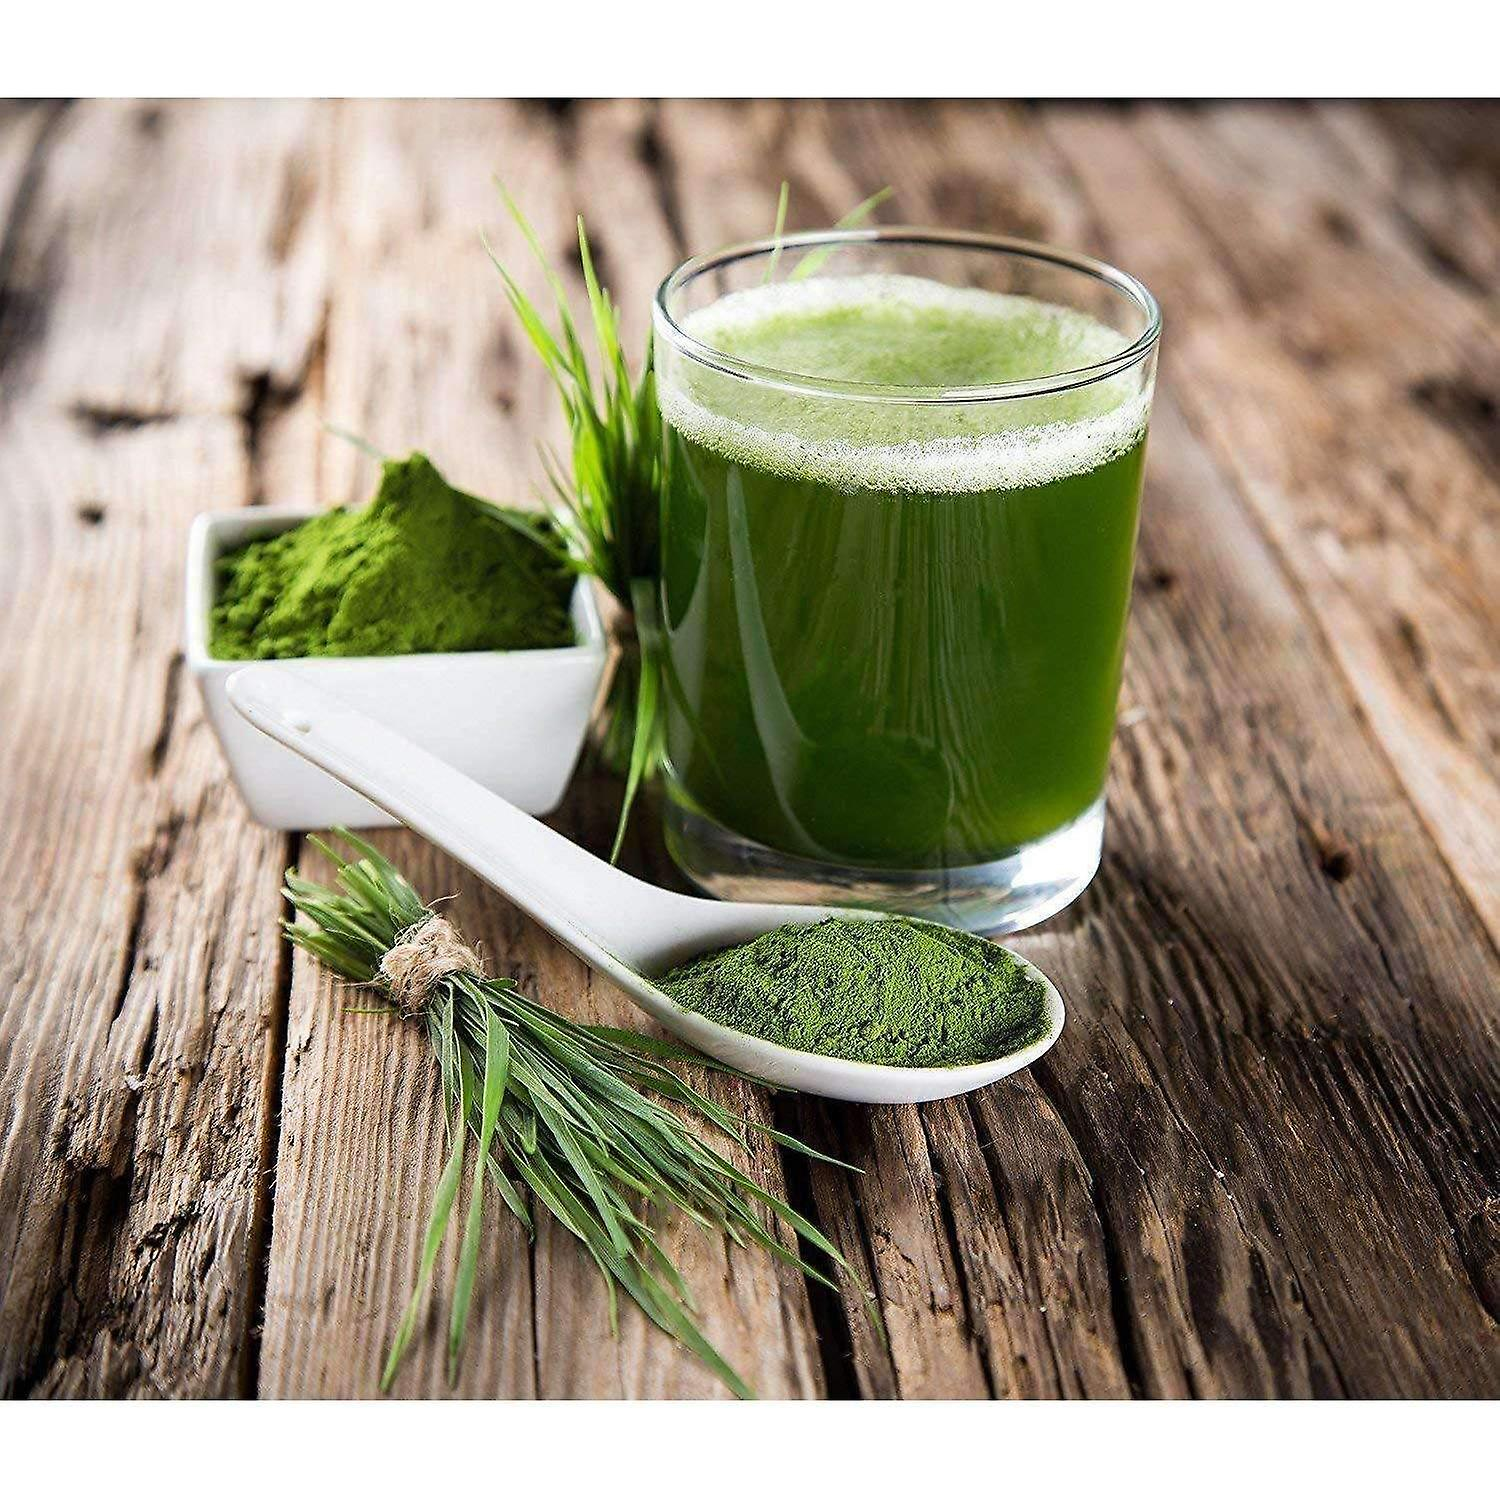 Raw greens powder with grasses, probiotics and superfoods - unsweetened - 30 servings (vegan)